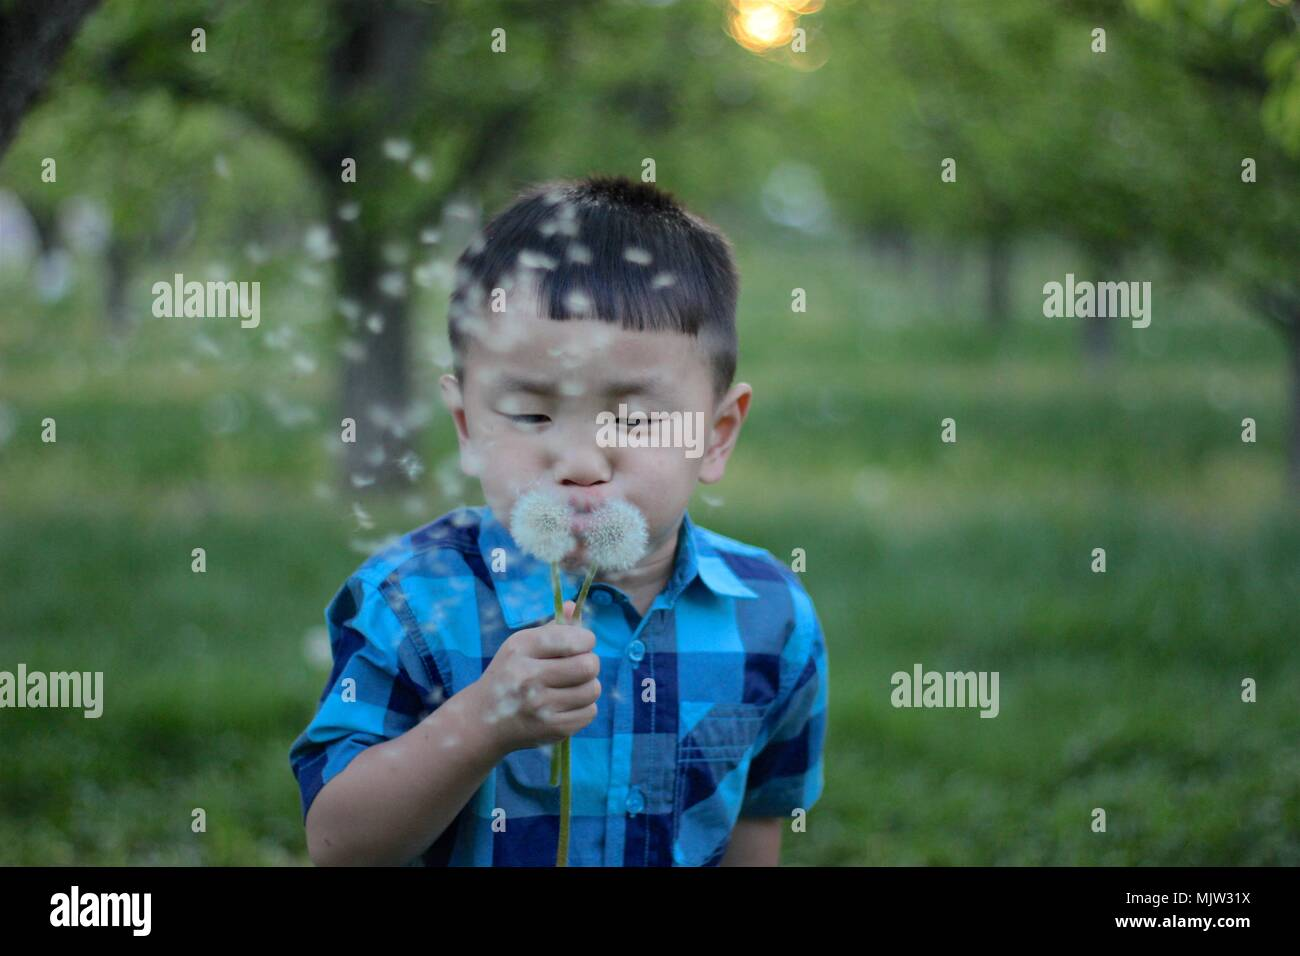 Yakima, Washington / USA - April 17, 2016:  Young Korean boy blows dandelion seeds in Johnson's Orchards during a late springtime evening. Stock Photo